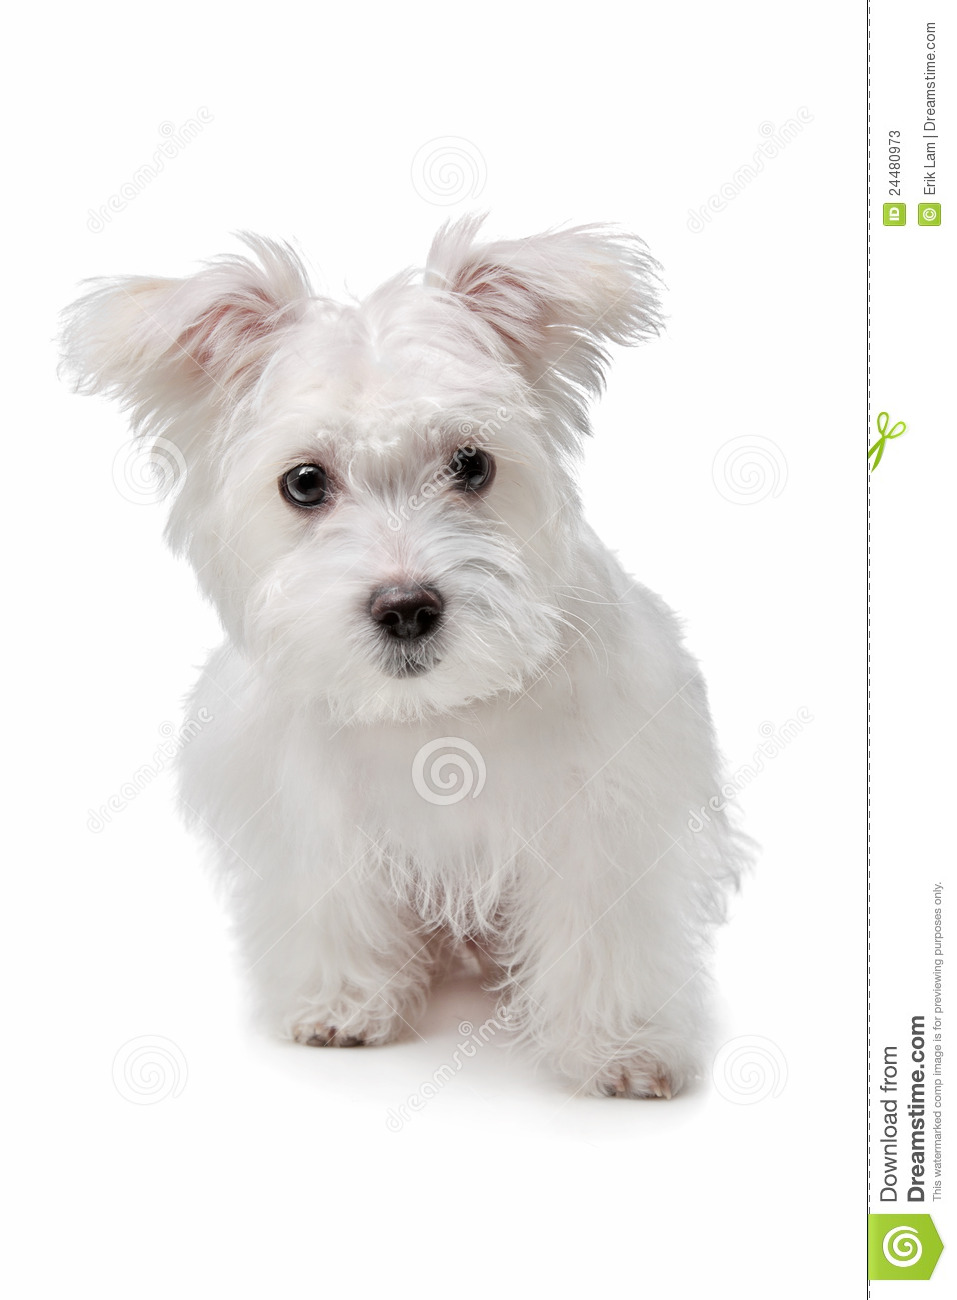 French Bulldog Maltese Mix Mix maltese dog in front of a